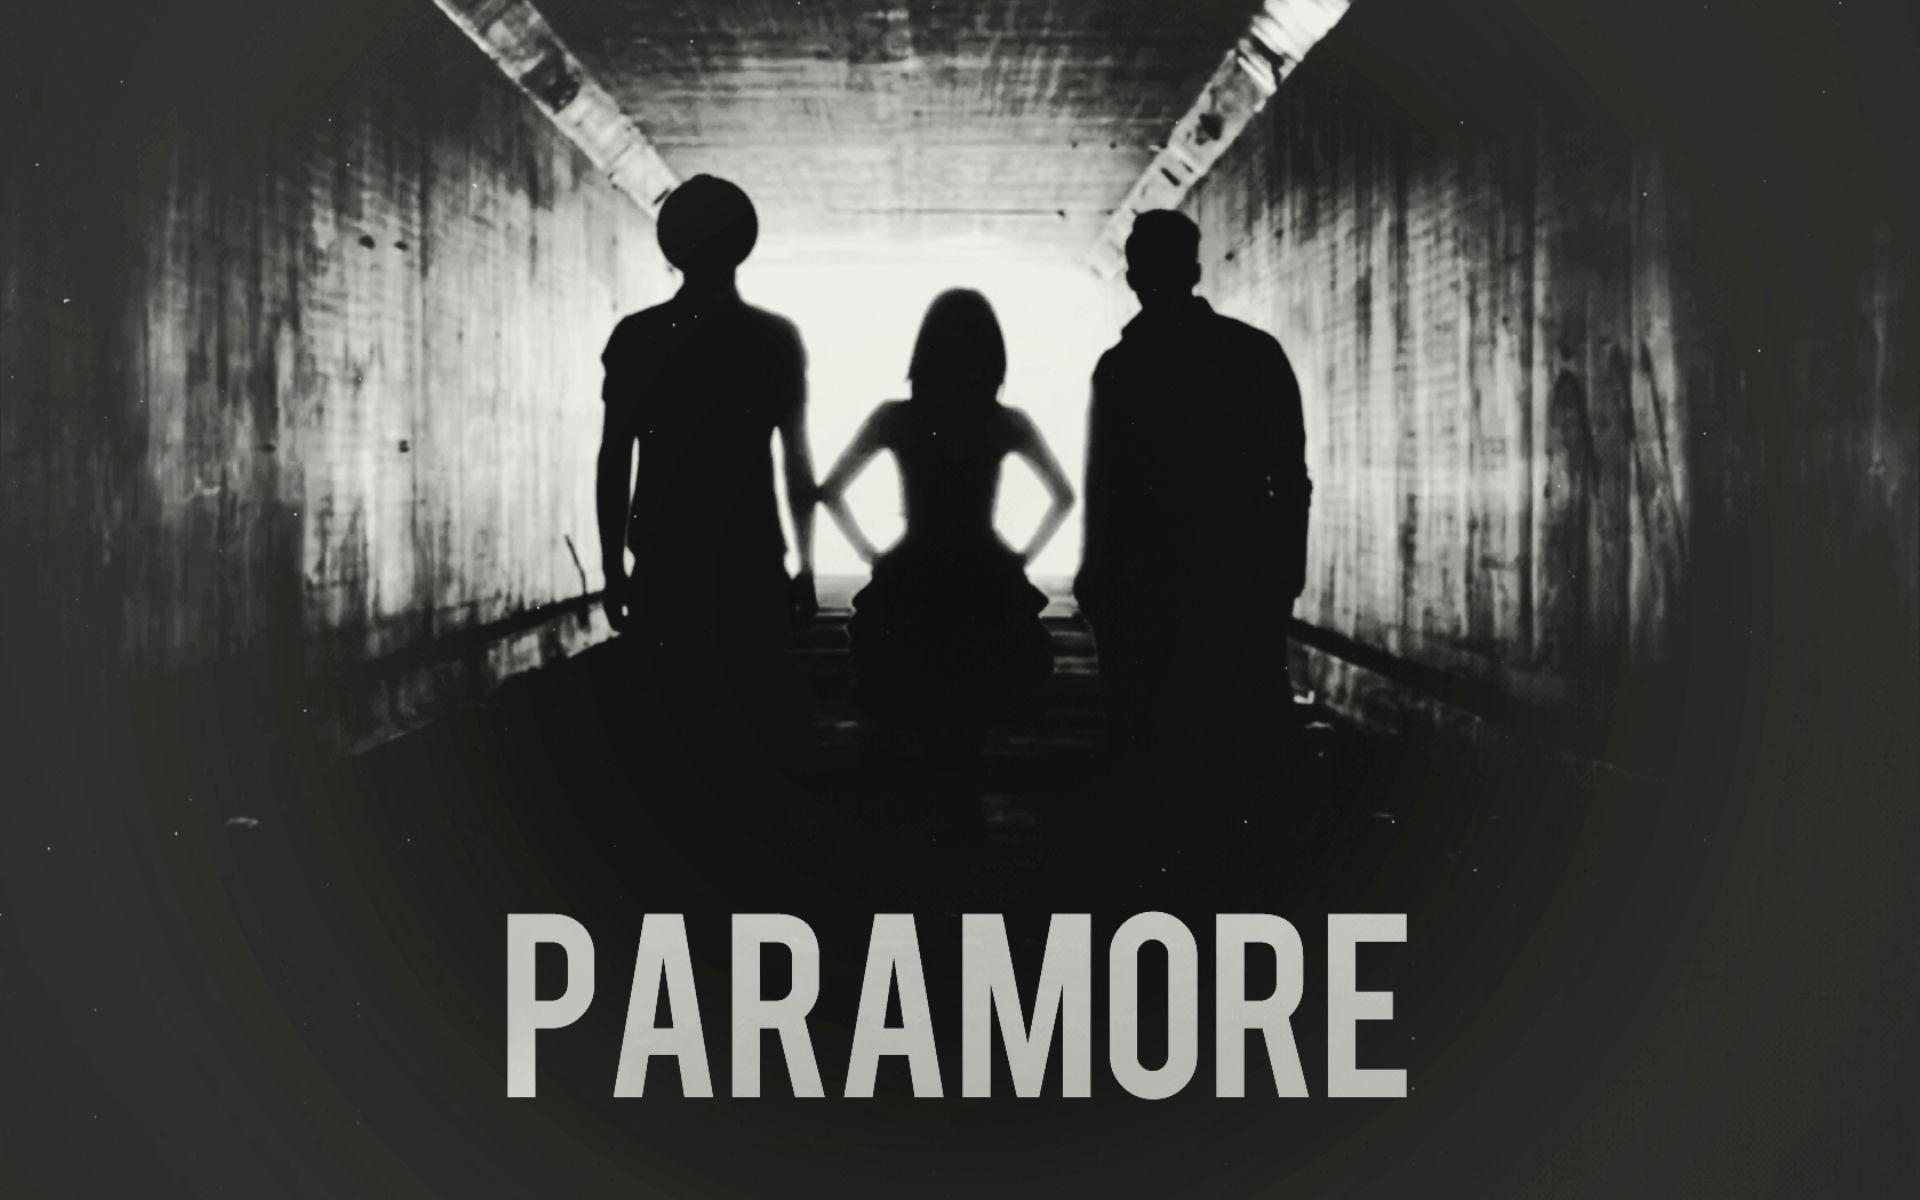 Paramore Images HD Wallpaper And Background Photos